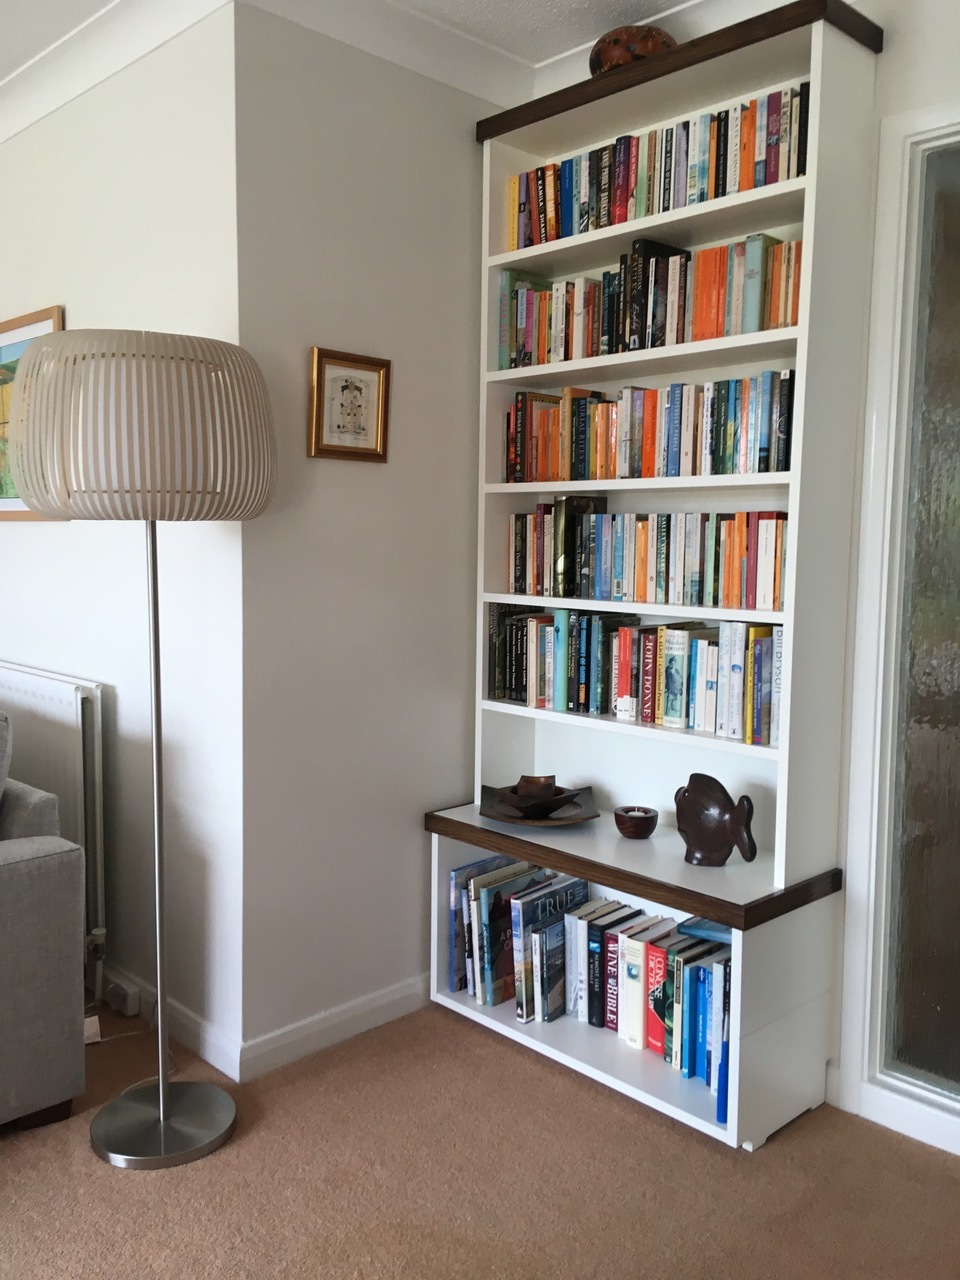 Companion bookcase - We were asked back to make this companion bookcase which compliments the main unit, shown above.